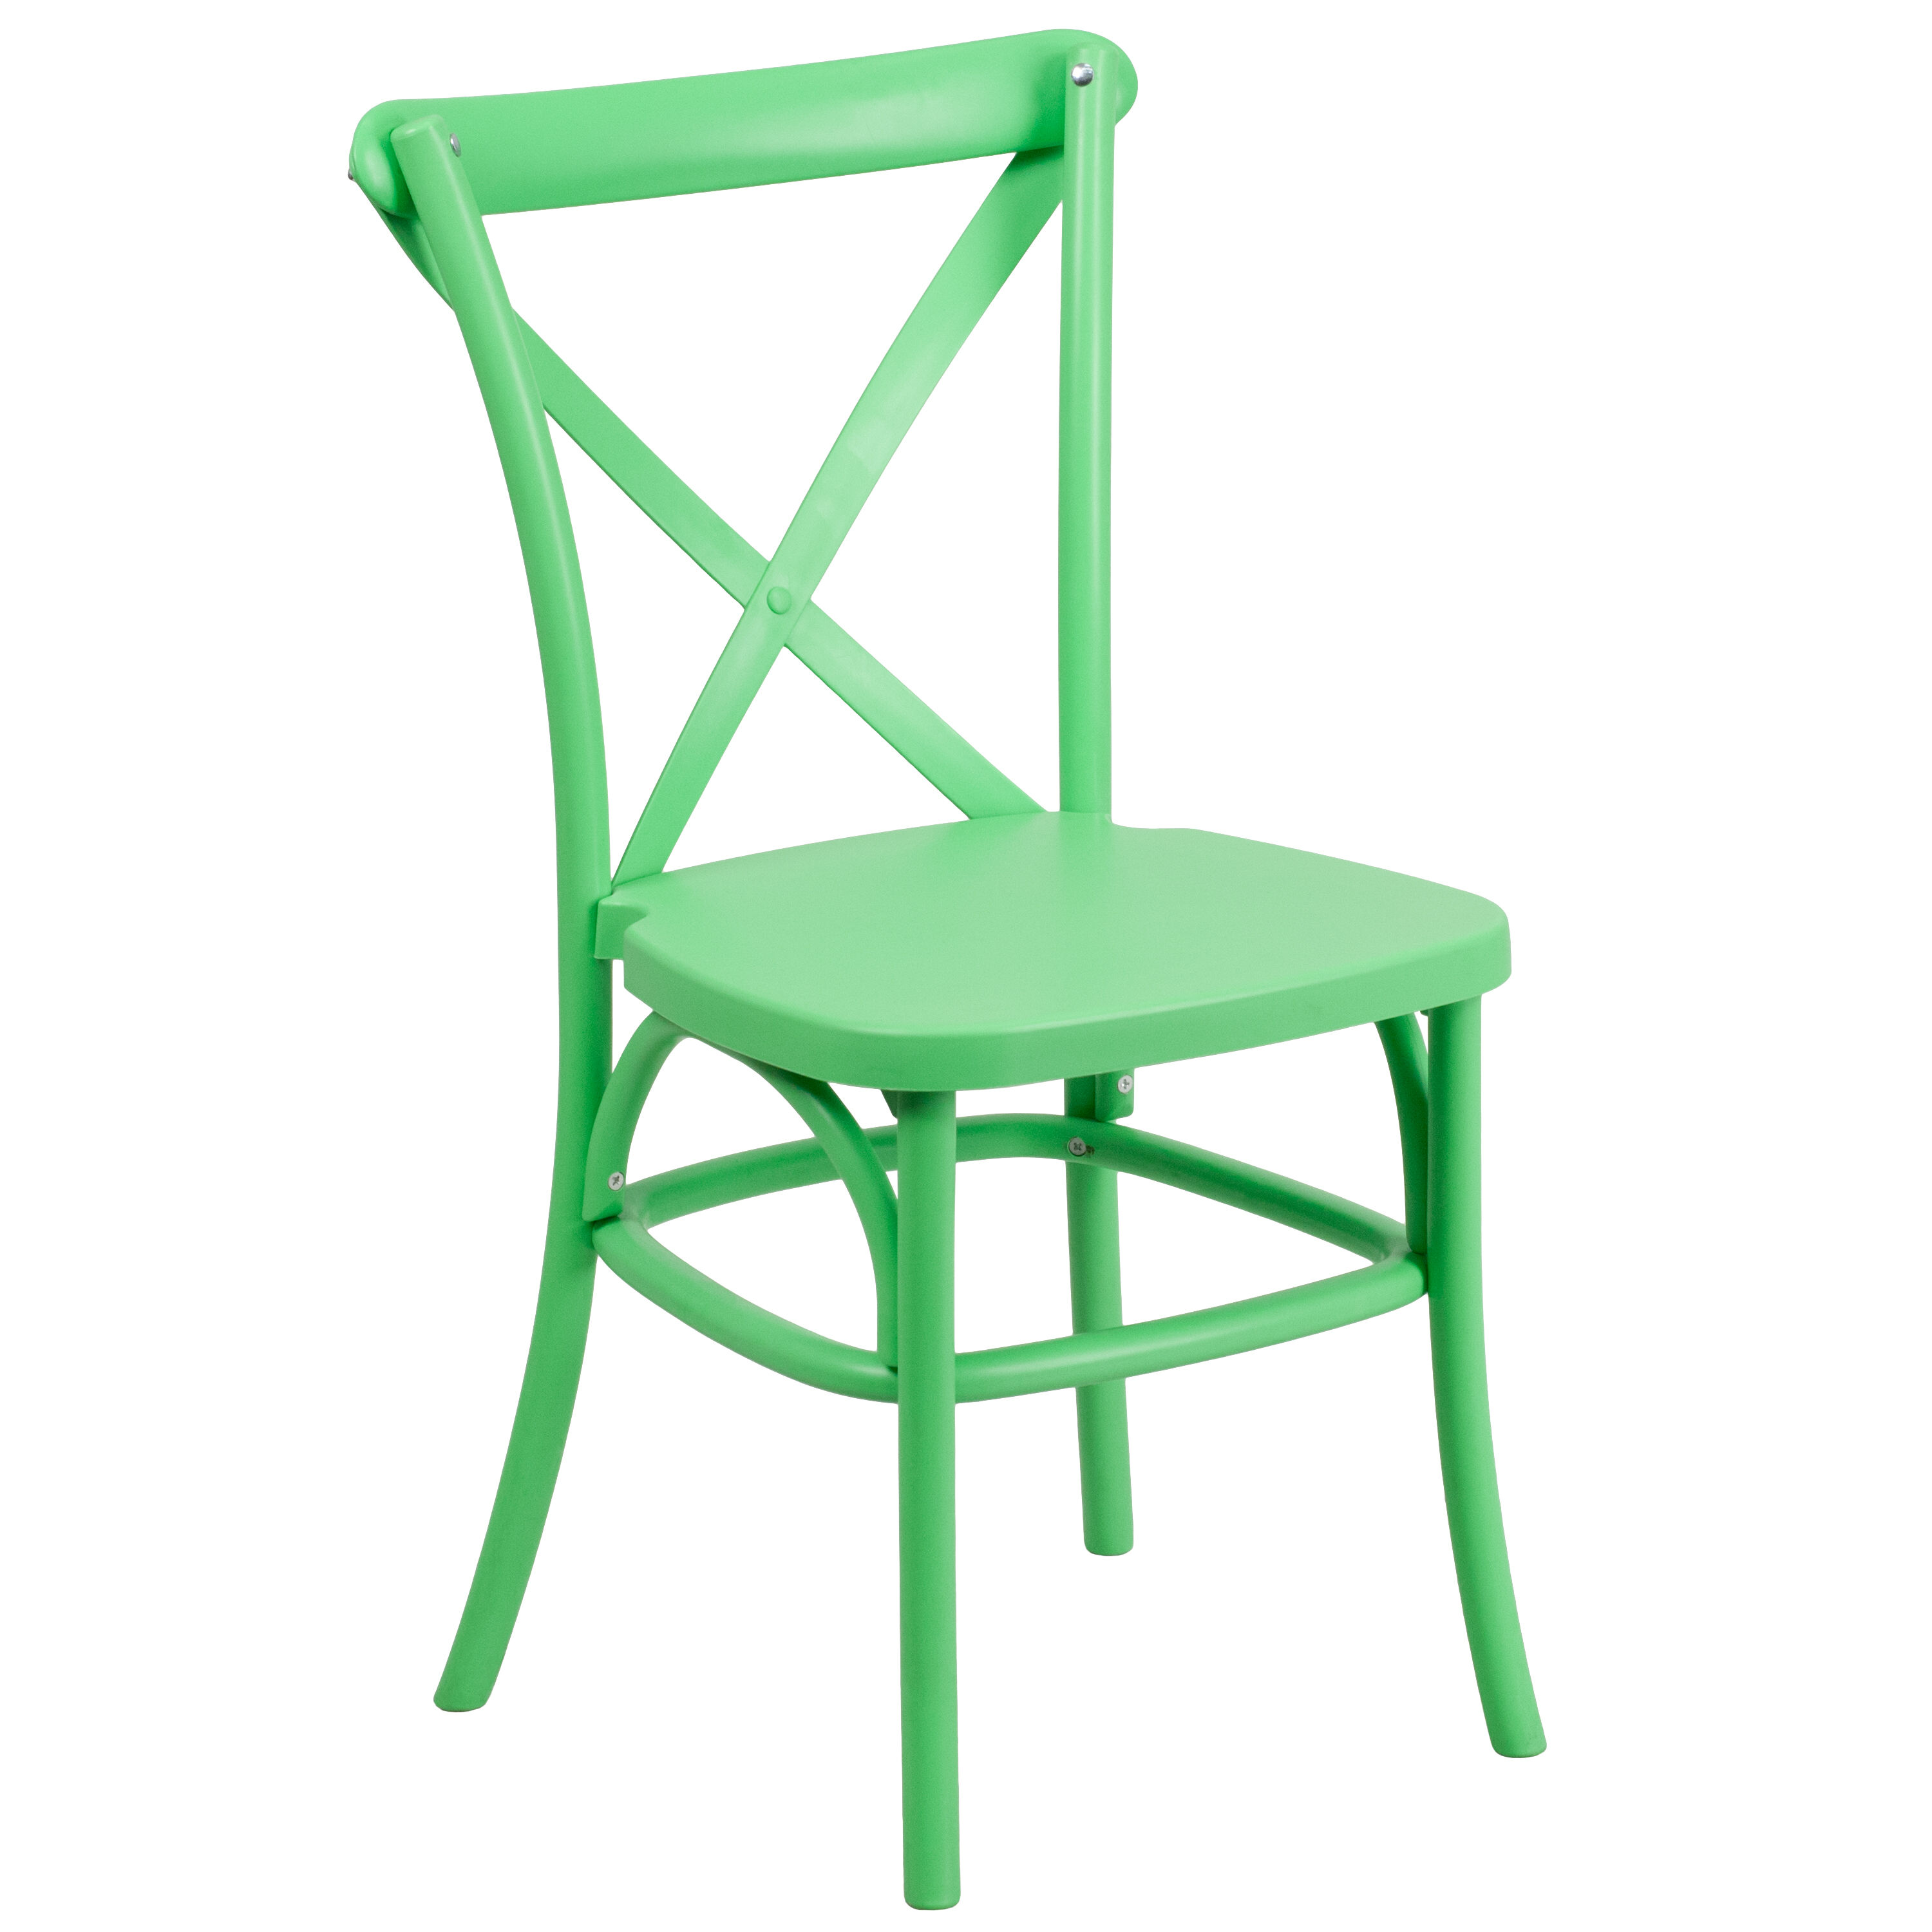 ... Our HERCULES Series Green Resin Indoor Outdoor Cross Back Chair With  Steel Inner Leg Is ...